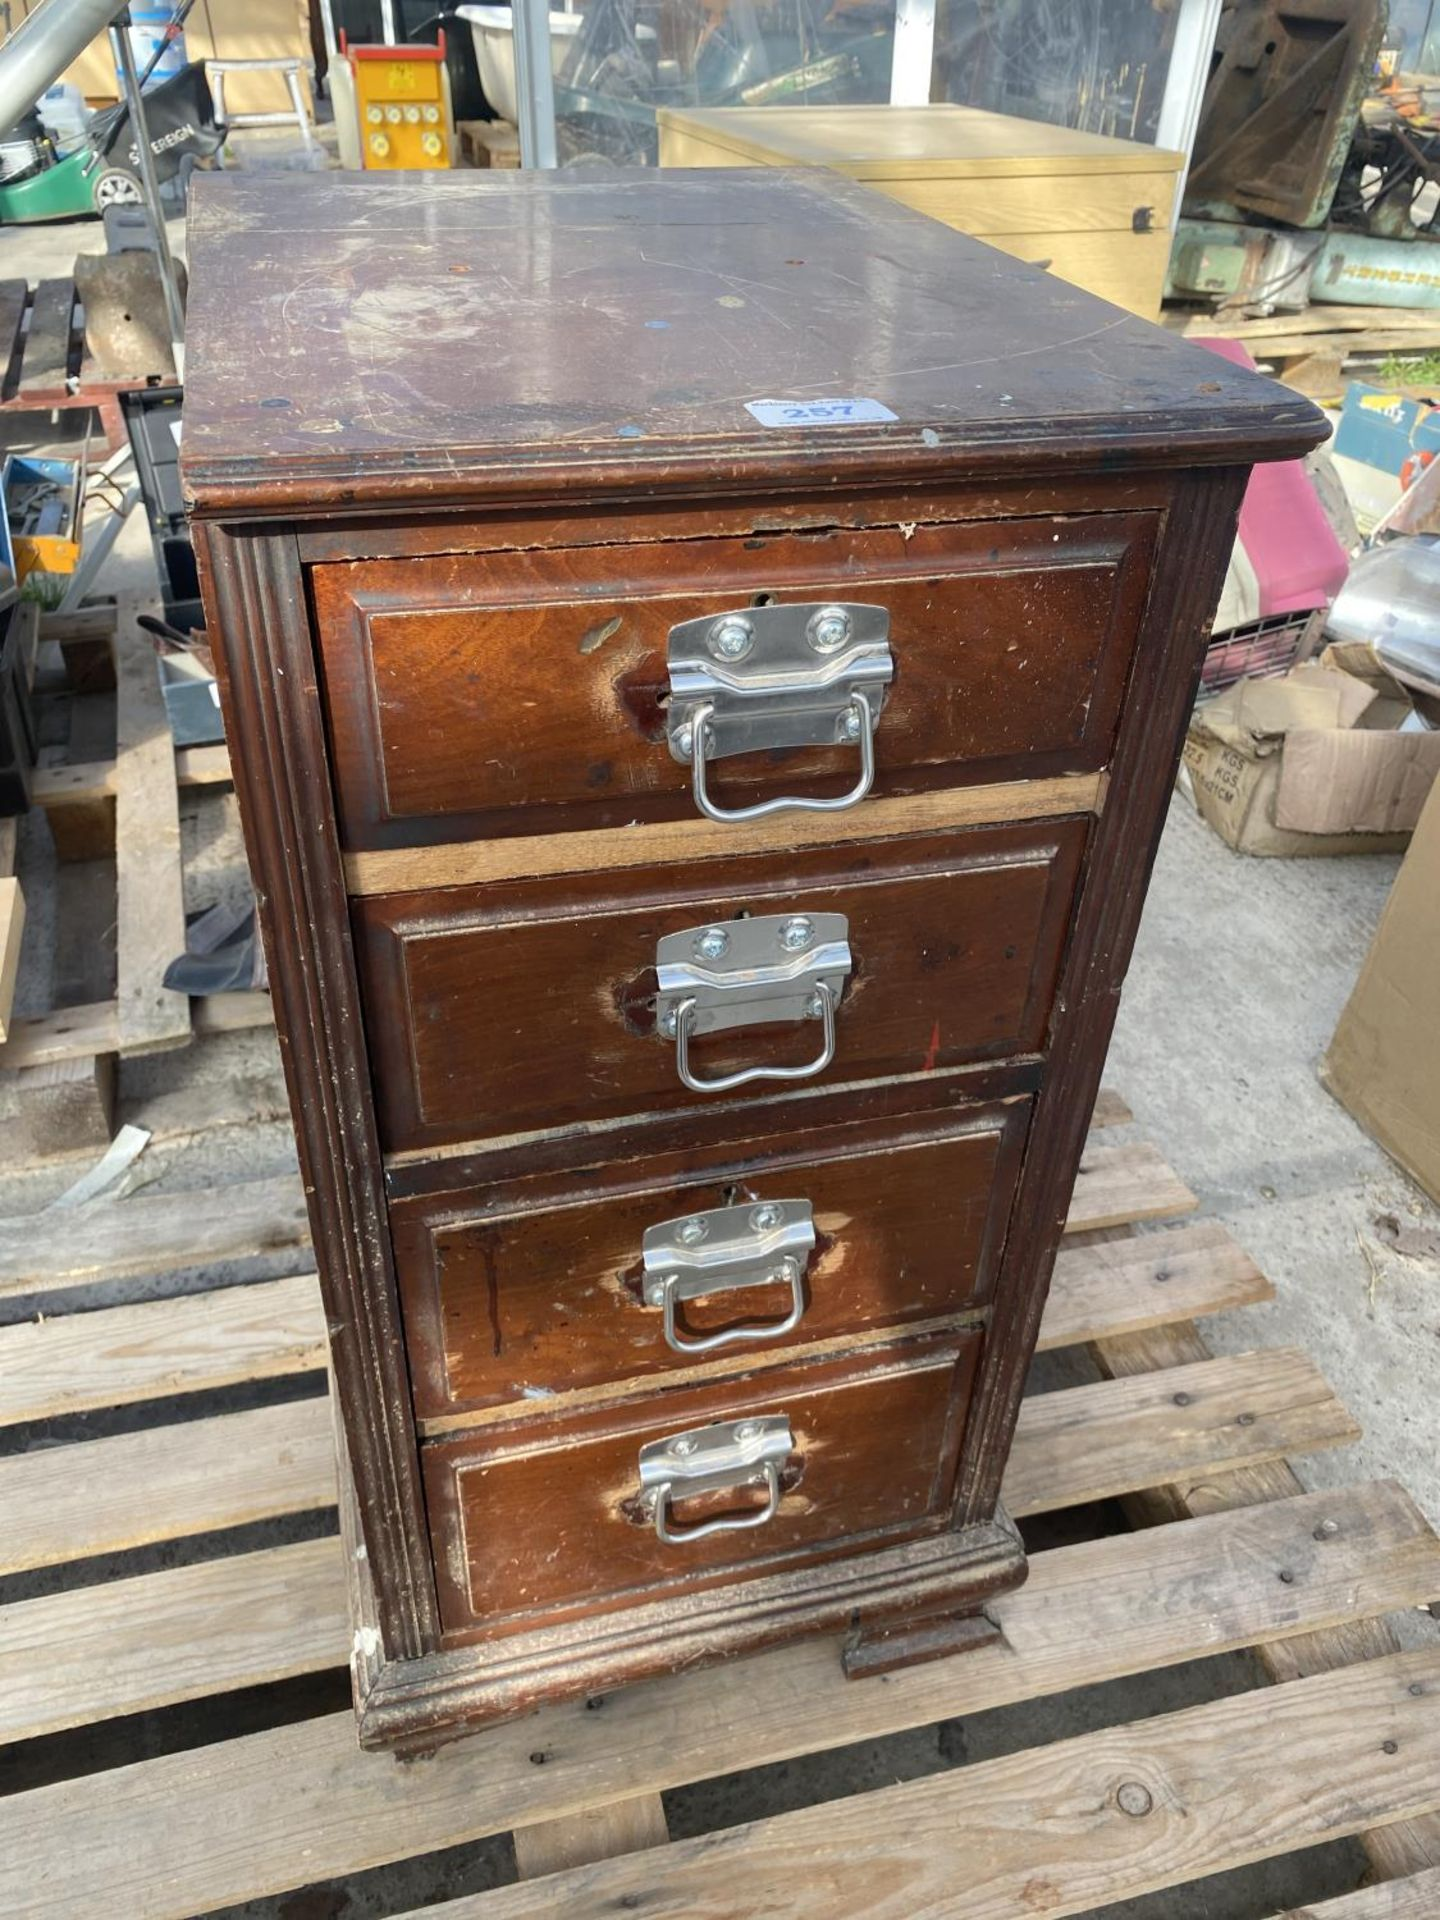 A WOOODEN FOUR DRAW CABINET AND CONTENTS TO INCLUDE TAP AND DIE, WIRE BRUSHES, AXE, TAPE MEASURES - Image 8 of 8